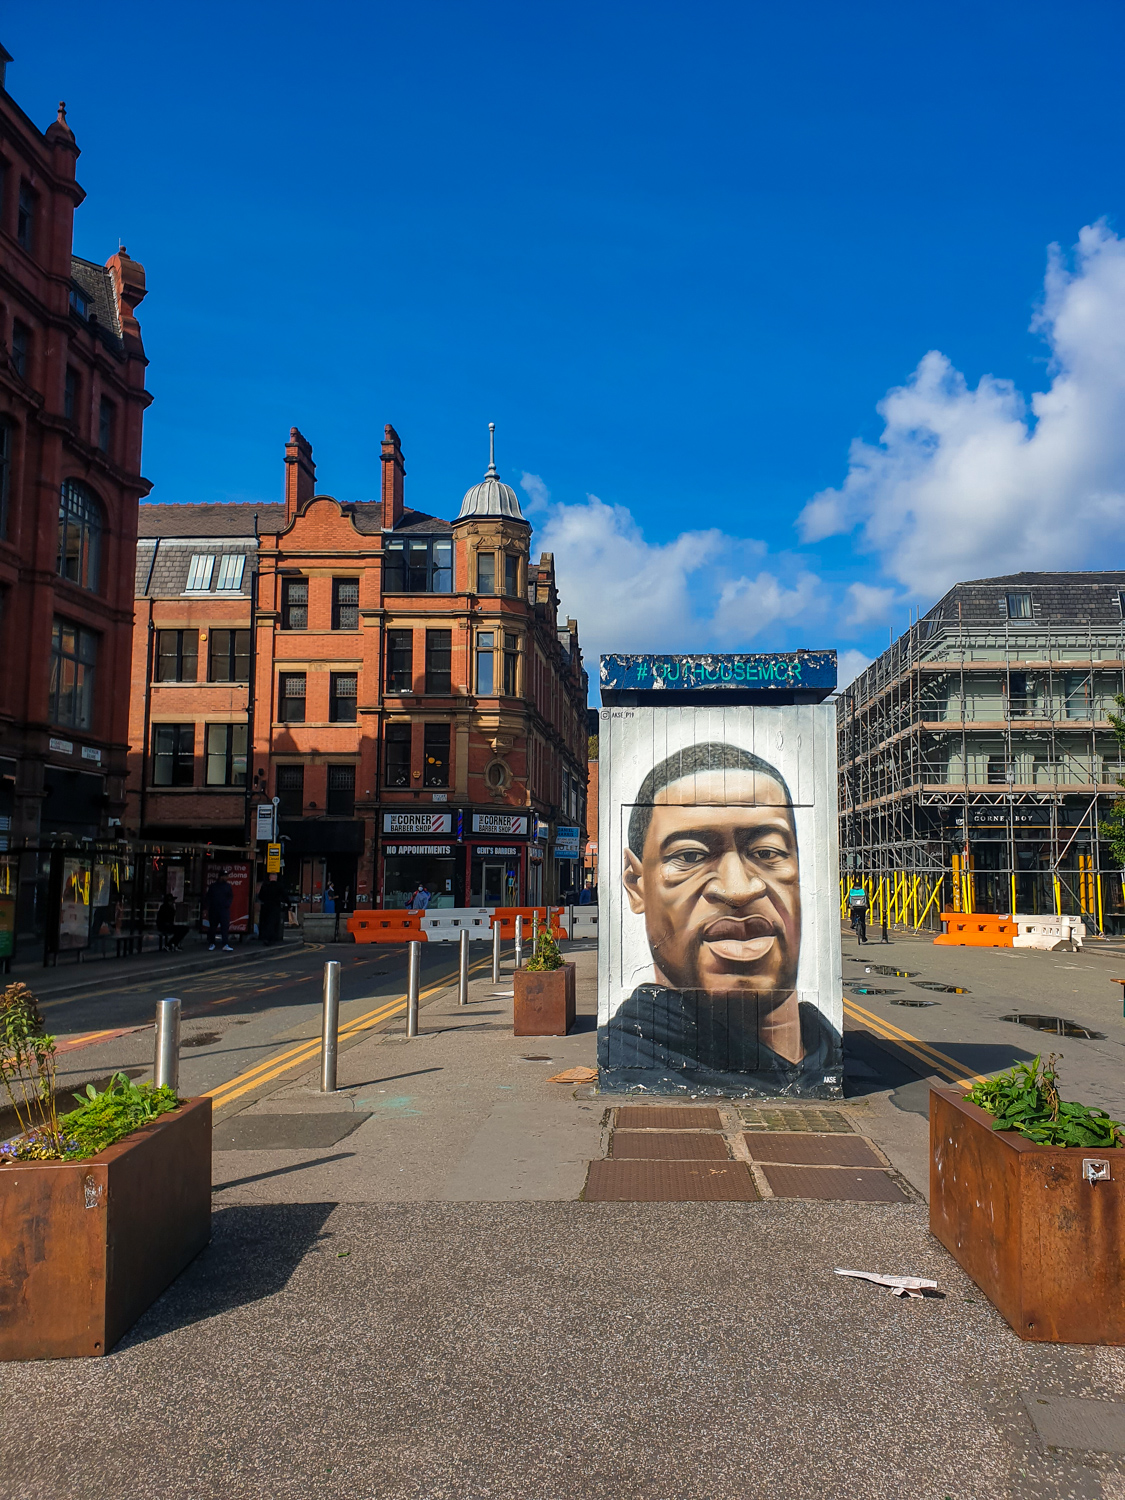 Mural on stevenson square in Manchester England